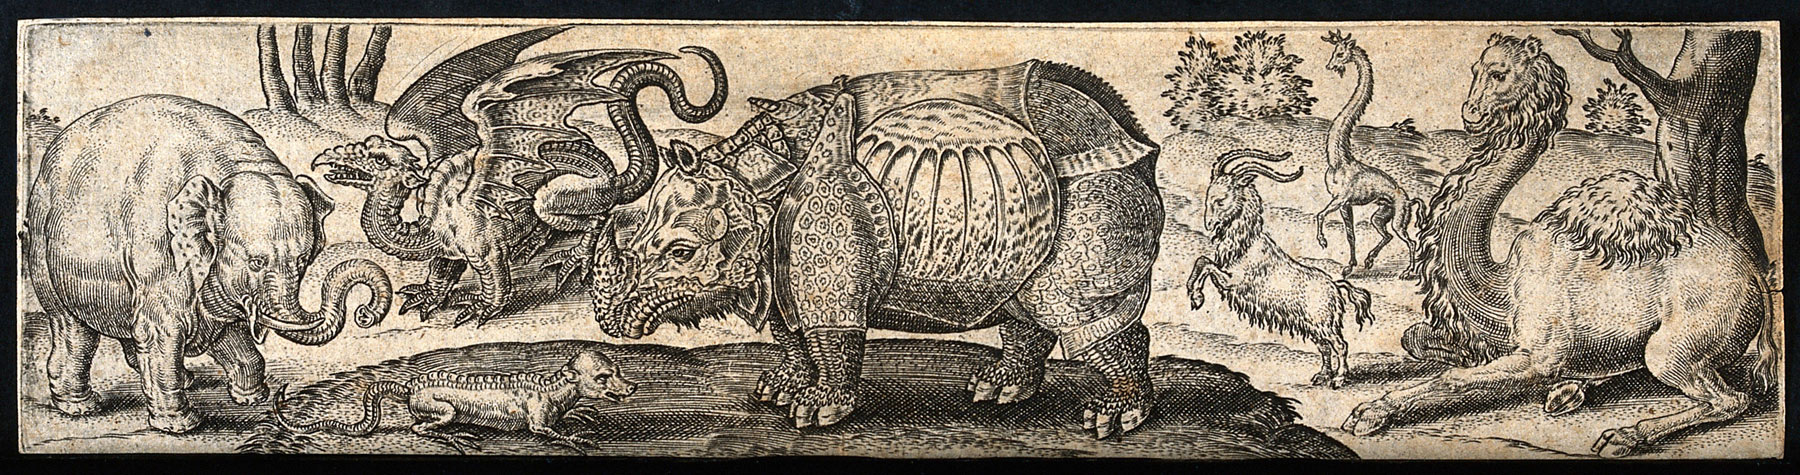 Abraham de Bruyn, Un elefante, un drago, un rettile, un rinoceronte, una capra e due giraffe (seconda metà del XV secolo; incisione, 52 x 21 mm; Londra, Wellcome Collection)